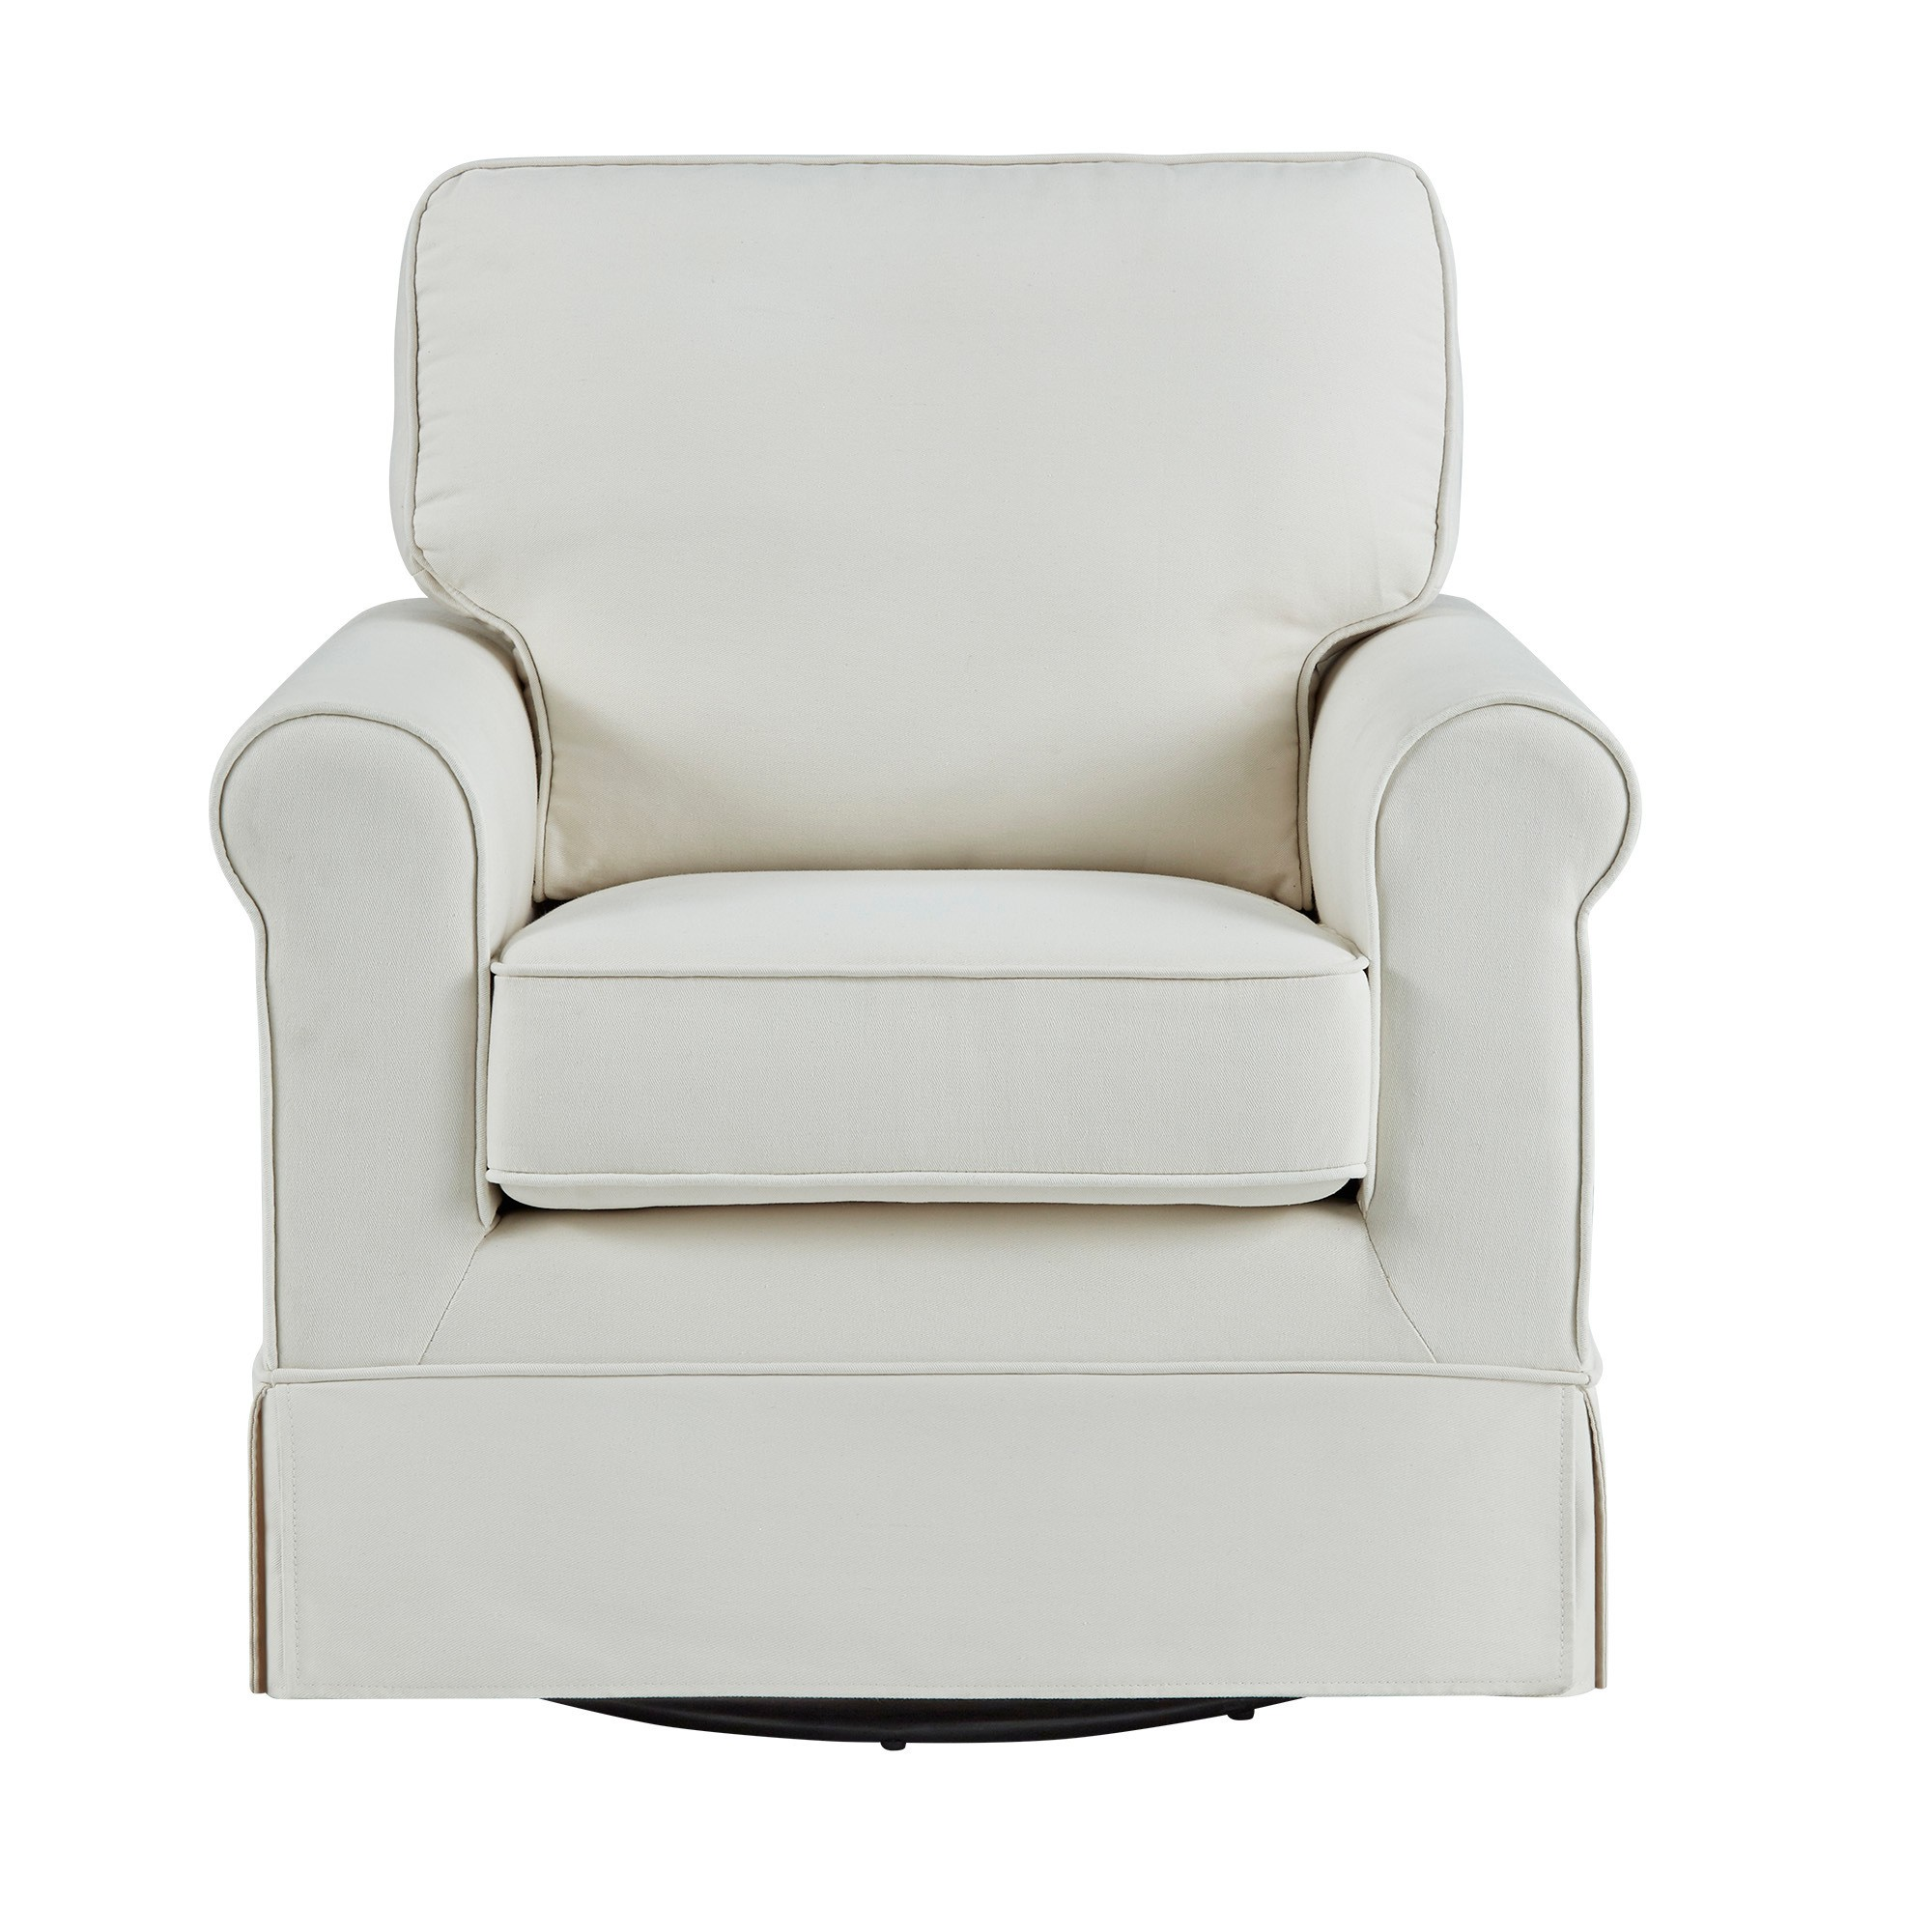 Peachy Burian Swivel Rocking Arm Chair Off White Inspire Q Caraccident5 Cool Chair Designs And Ideas Caraccident5Info